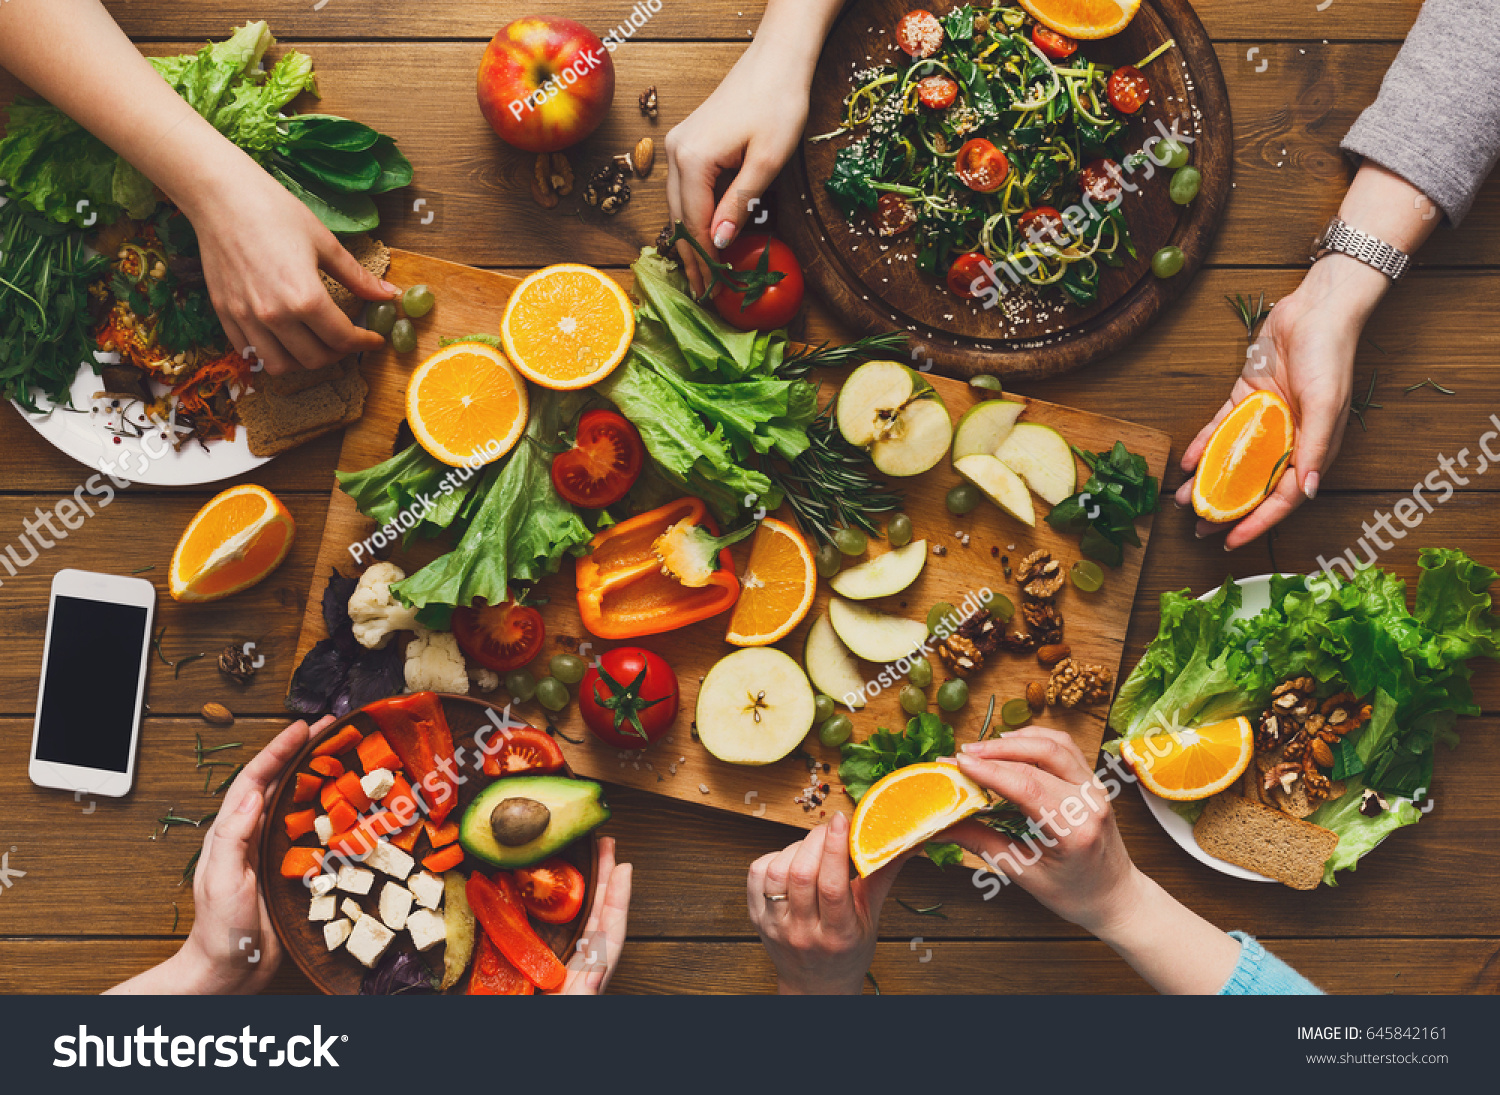 Healthy Food Dinner Table Women At Home Together Eating Fruits And Vegetables Top